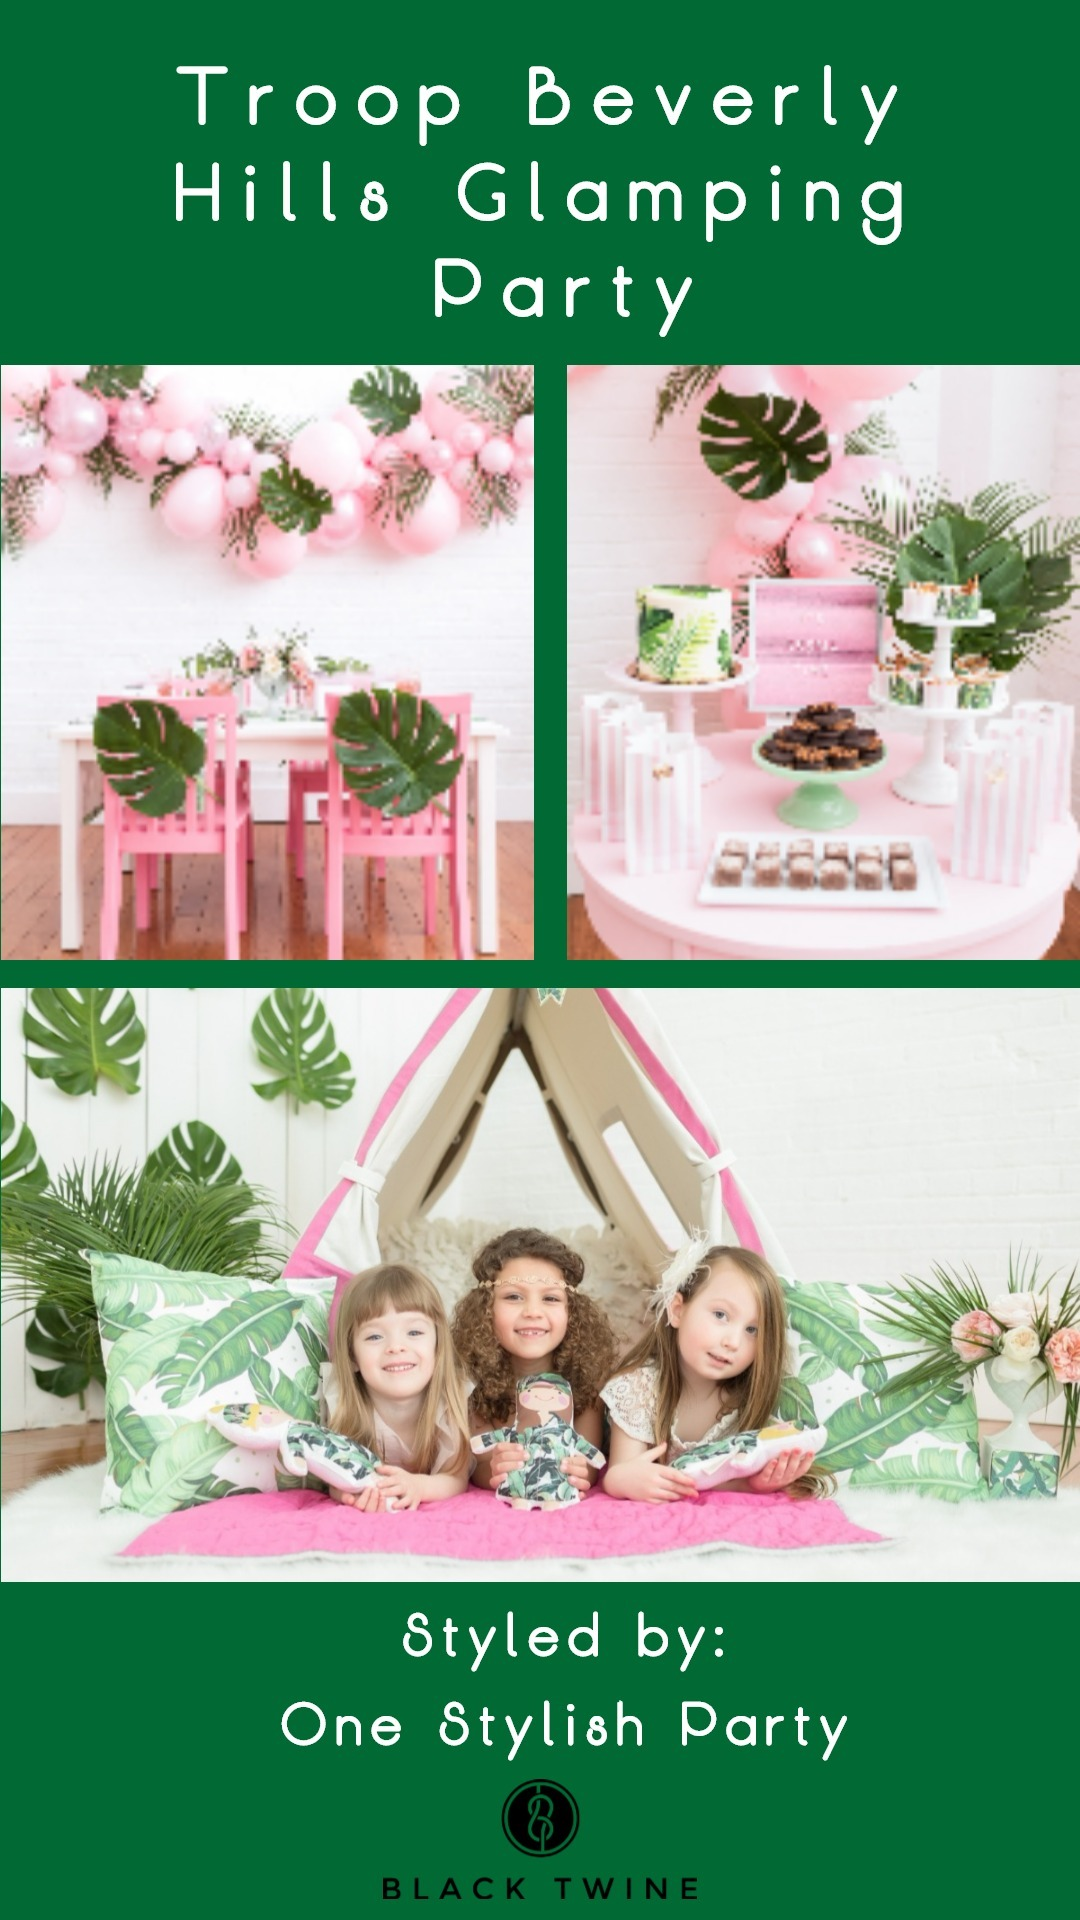 Troop Beverly Hills Glamping Party Styled by One Stylish Party | Black Twine